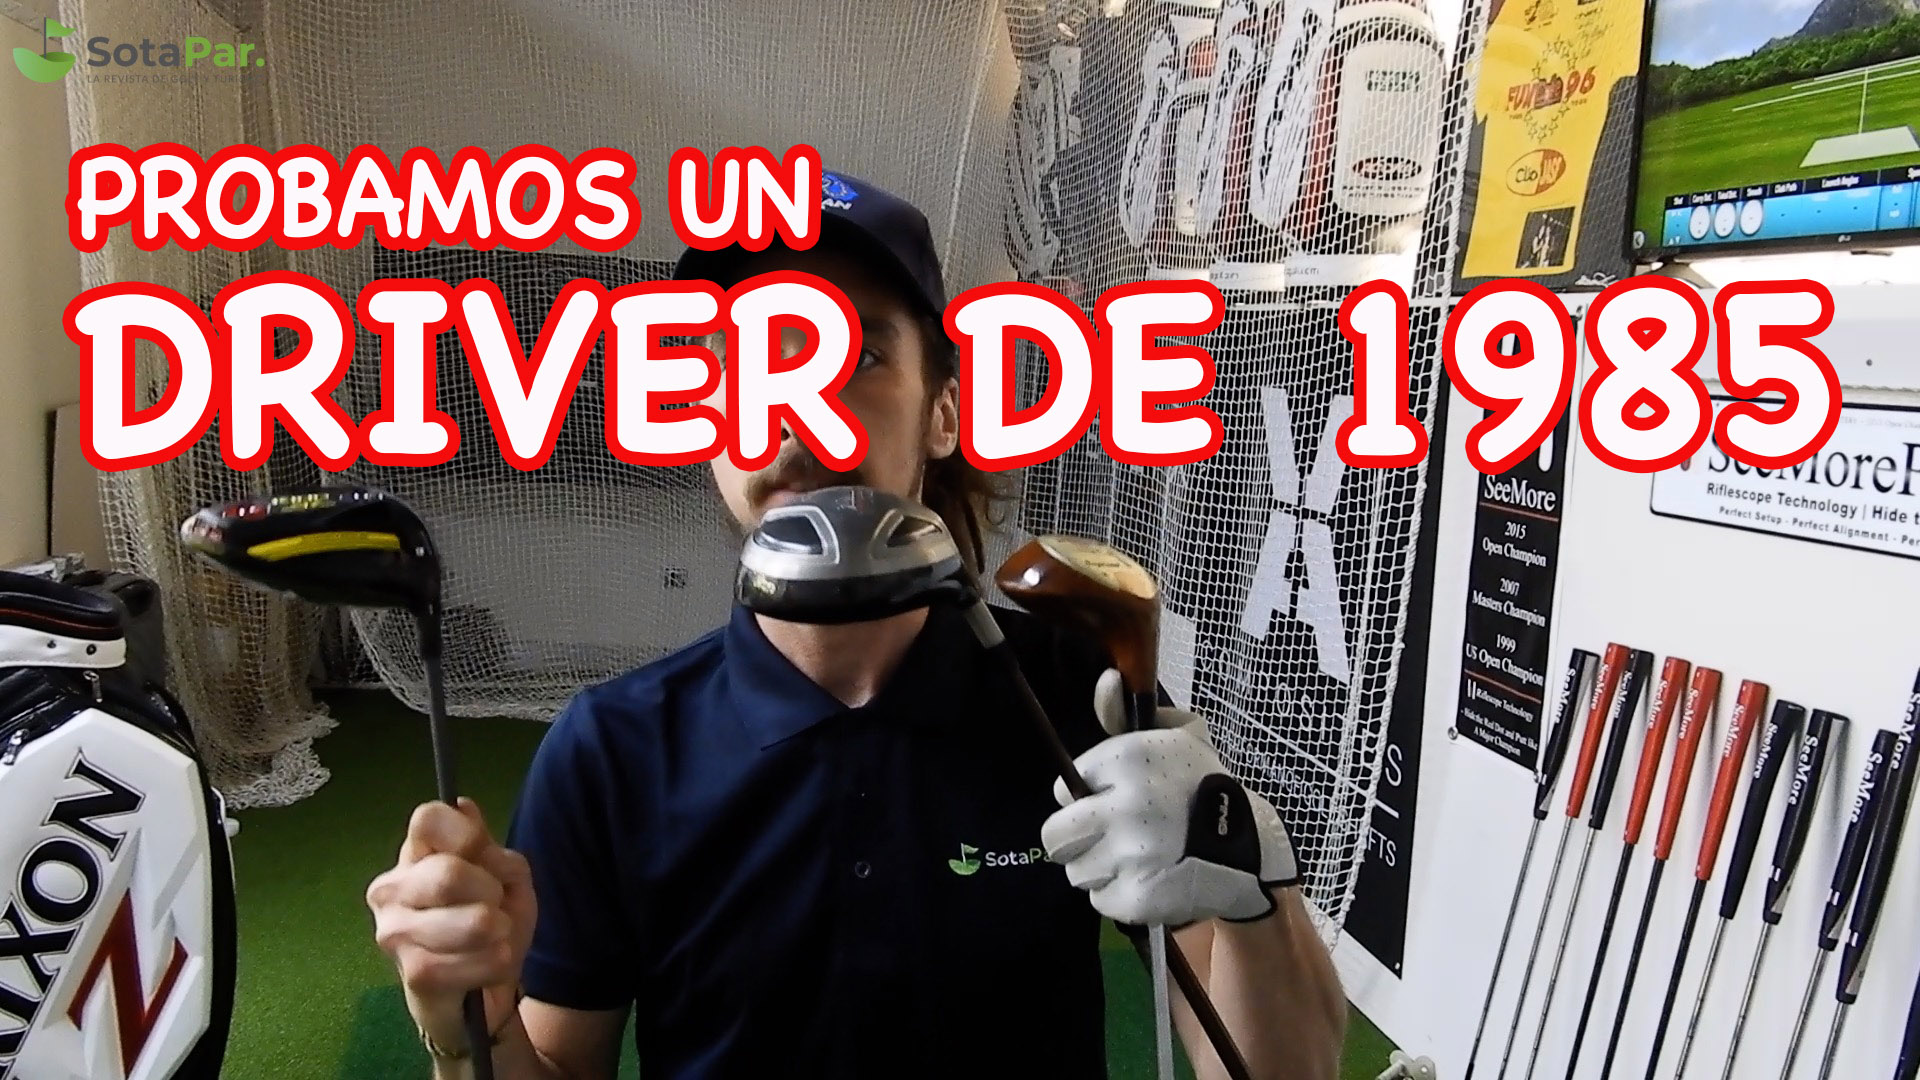 Driver Slazenger de 1985  VS. Cobra King SZ